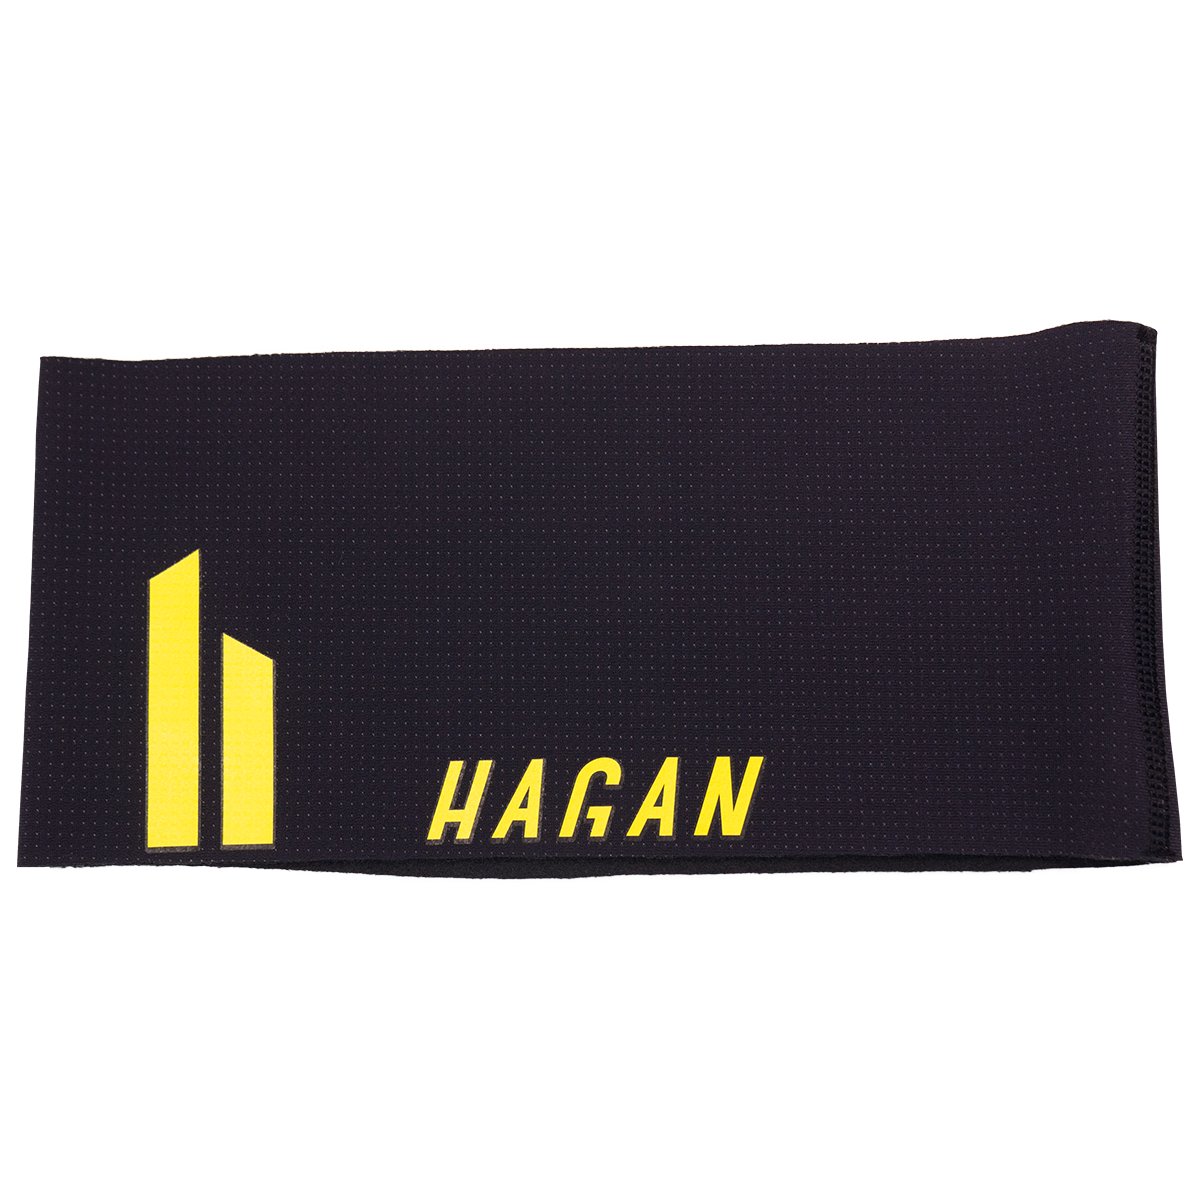 Headband Sport, Clothing - Hagan Ski Mountaineering